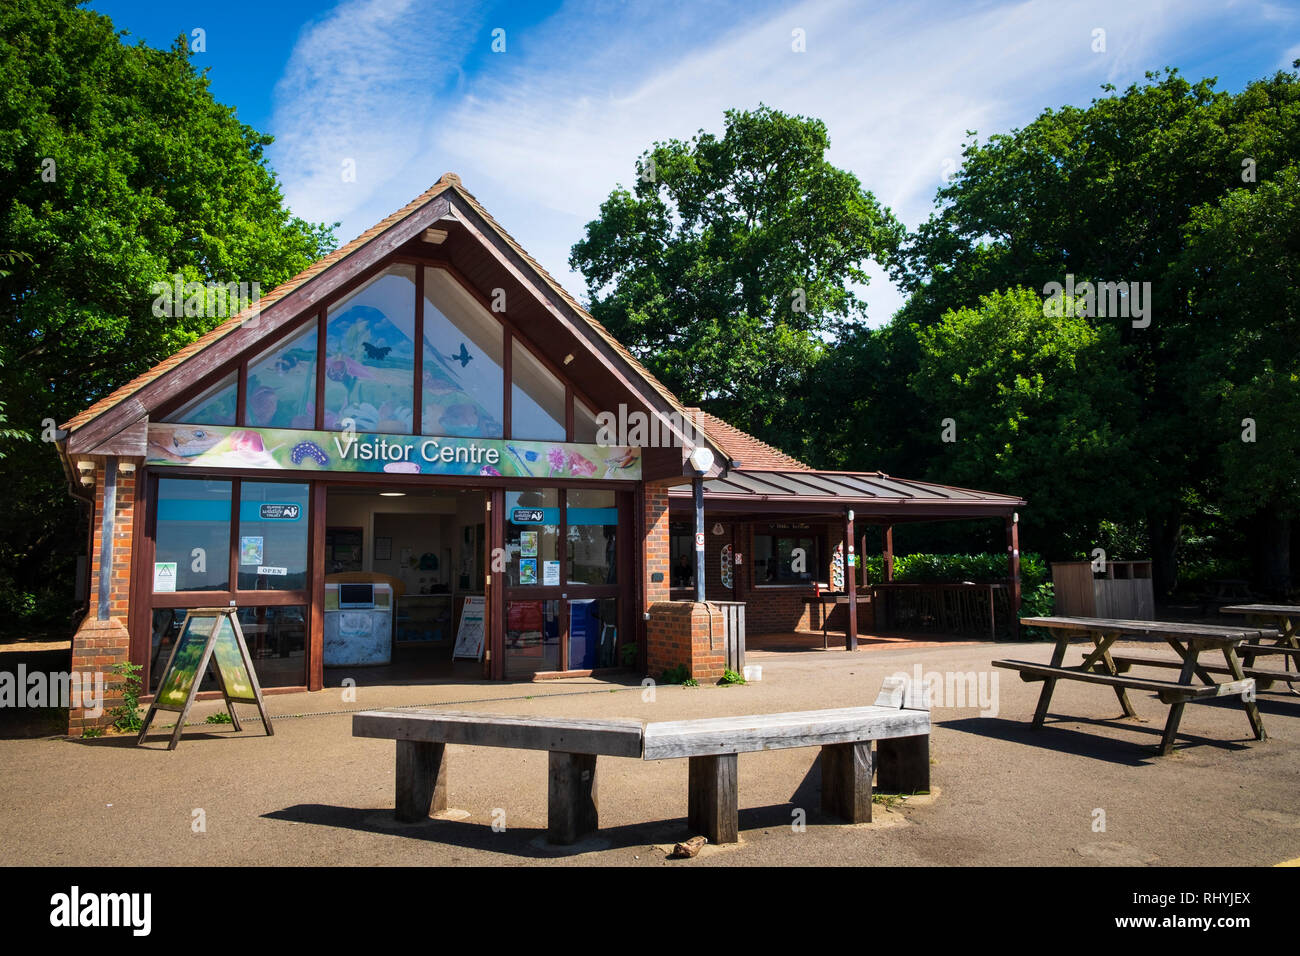 Visitor Centre at Newlands Corner park in Surrey Stock Photo